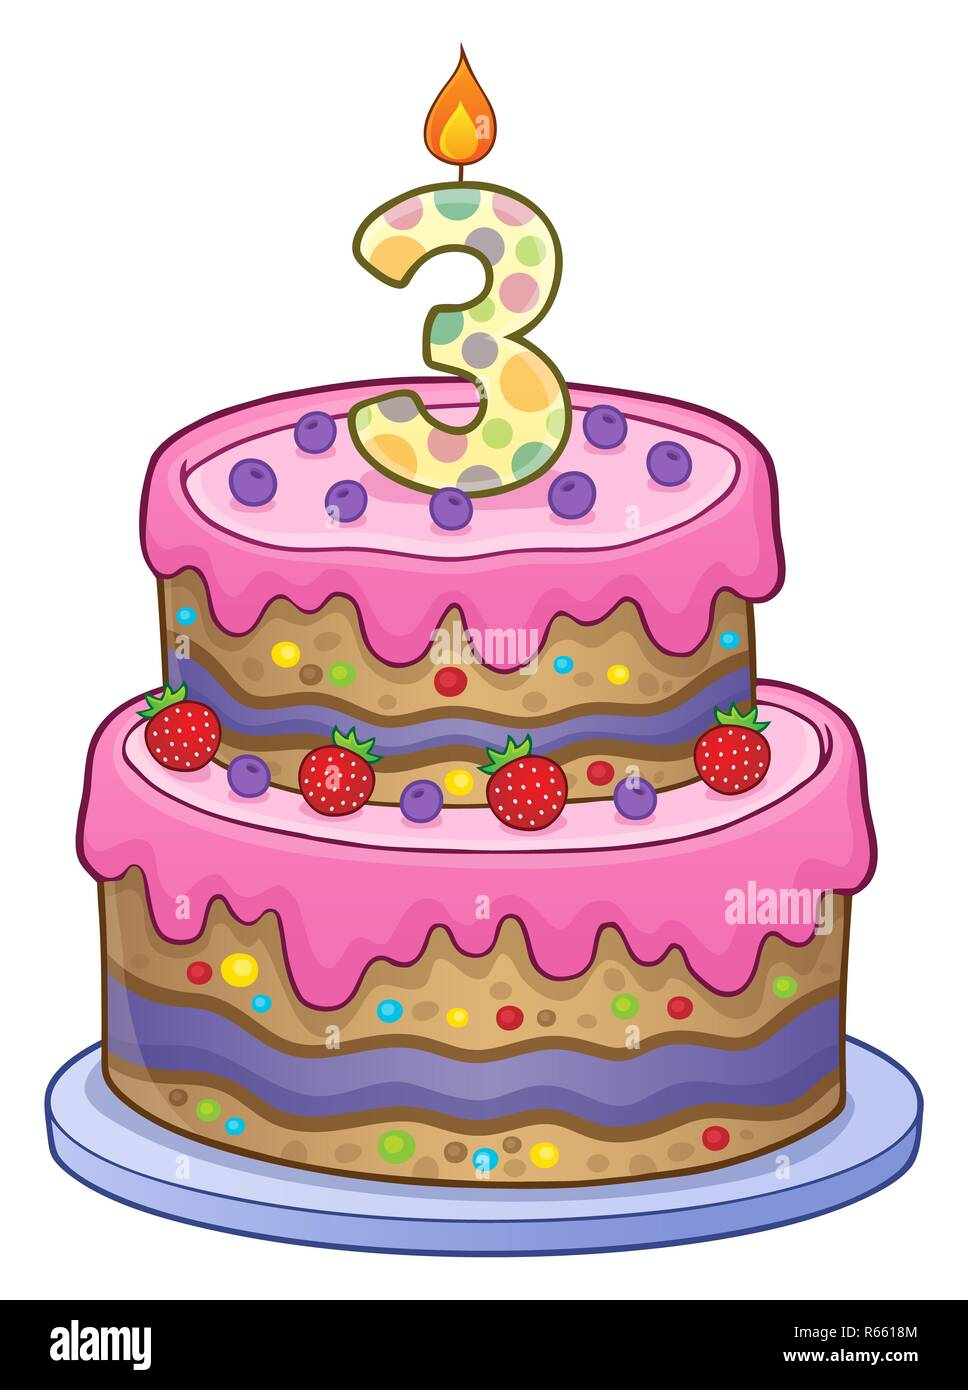 Peachy Birthday Cake Image For 3 Years Old Stock Photo 227555460 Alamy Funny Birthday Cards Online Overcheapnameinfo